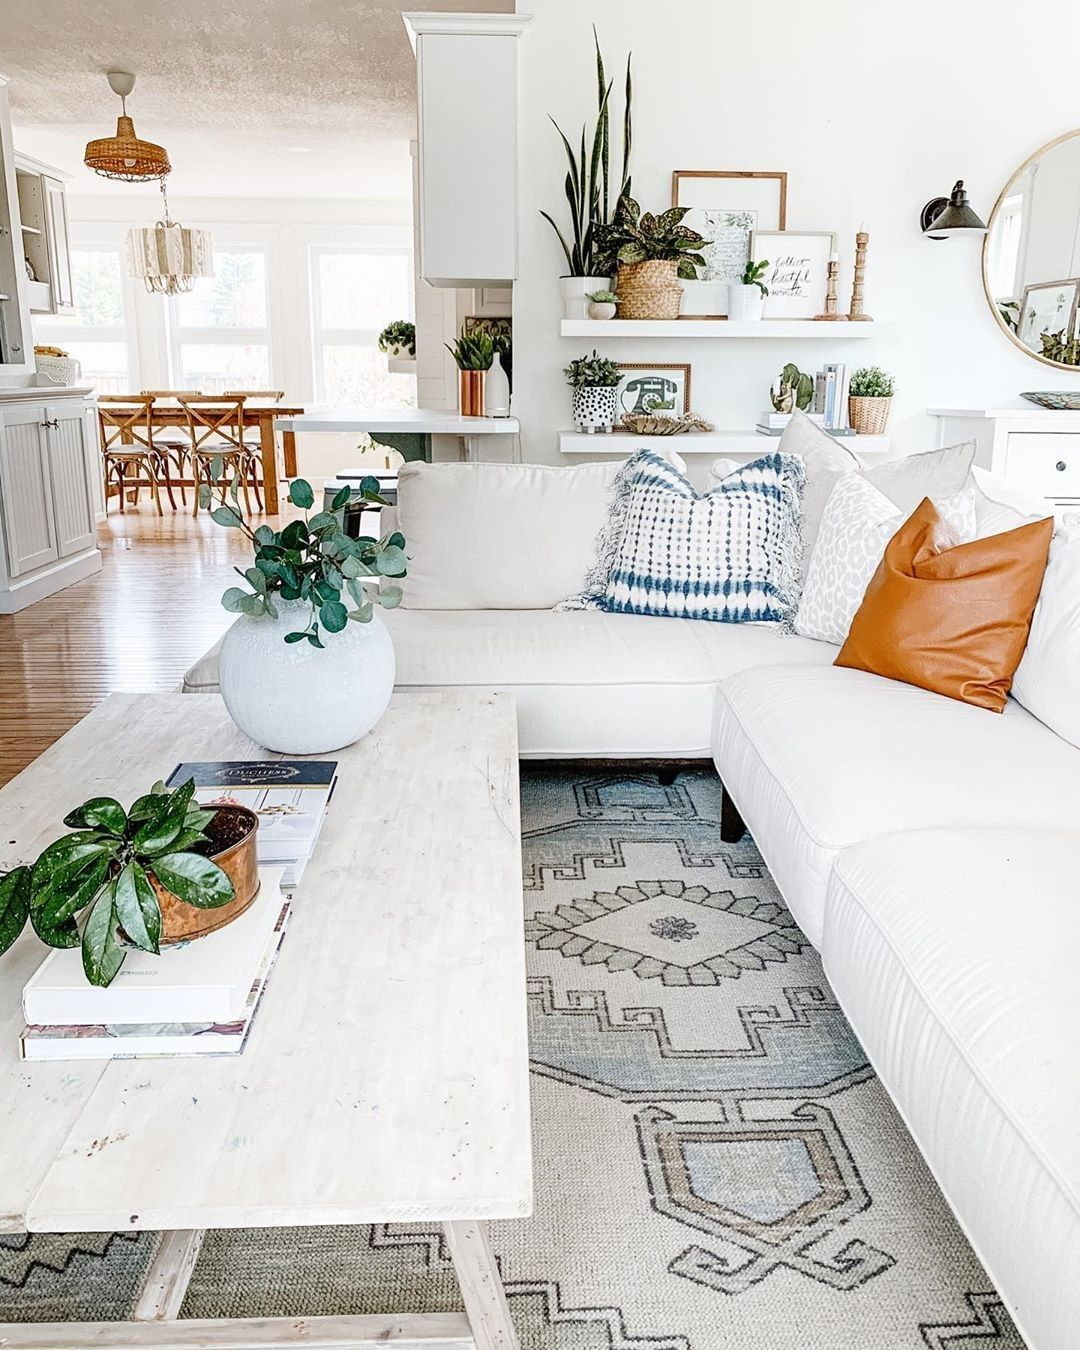 @the.beautyrevival's stunning living room! She's filled her bright area with gorgeous plants and accent pieces, well done 🤩🤩! Click the image to try our free home design app.  (Keywords: living room decor, living room ideas, living room designs, dream rooms, house design, home decor ideas, living room rugs, living room furniture, positive vibes, positive thoughts, boho living room)